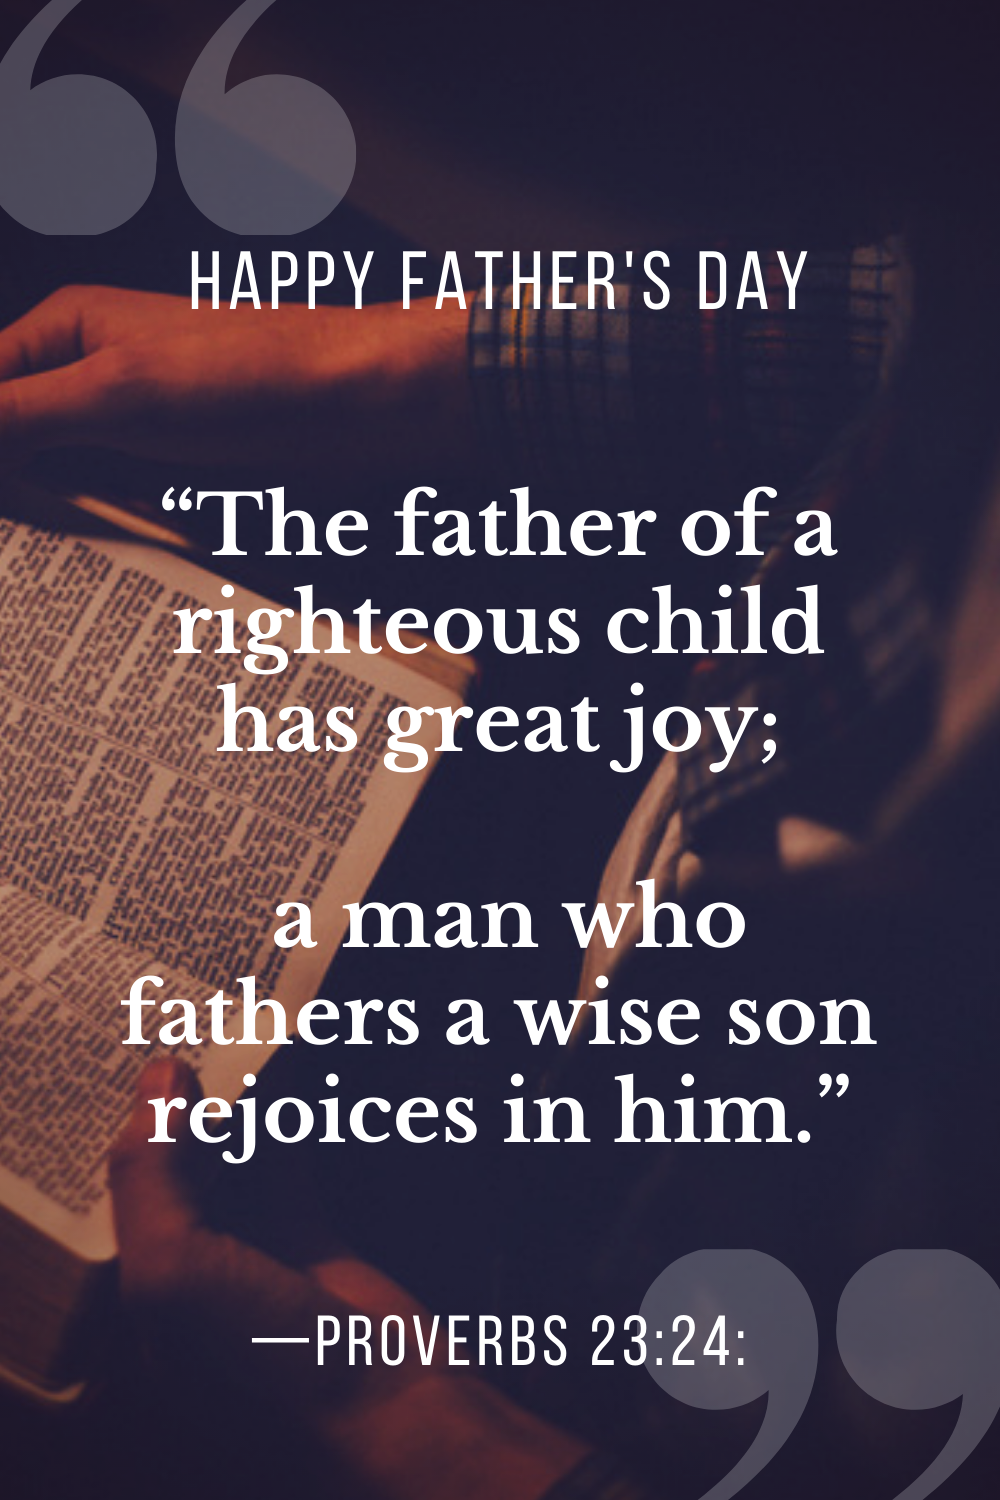 fathers-day-bible-verse